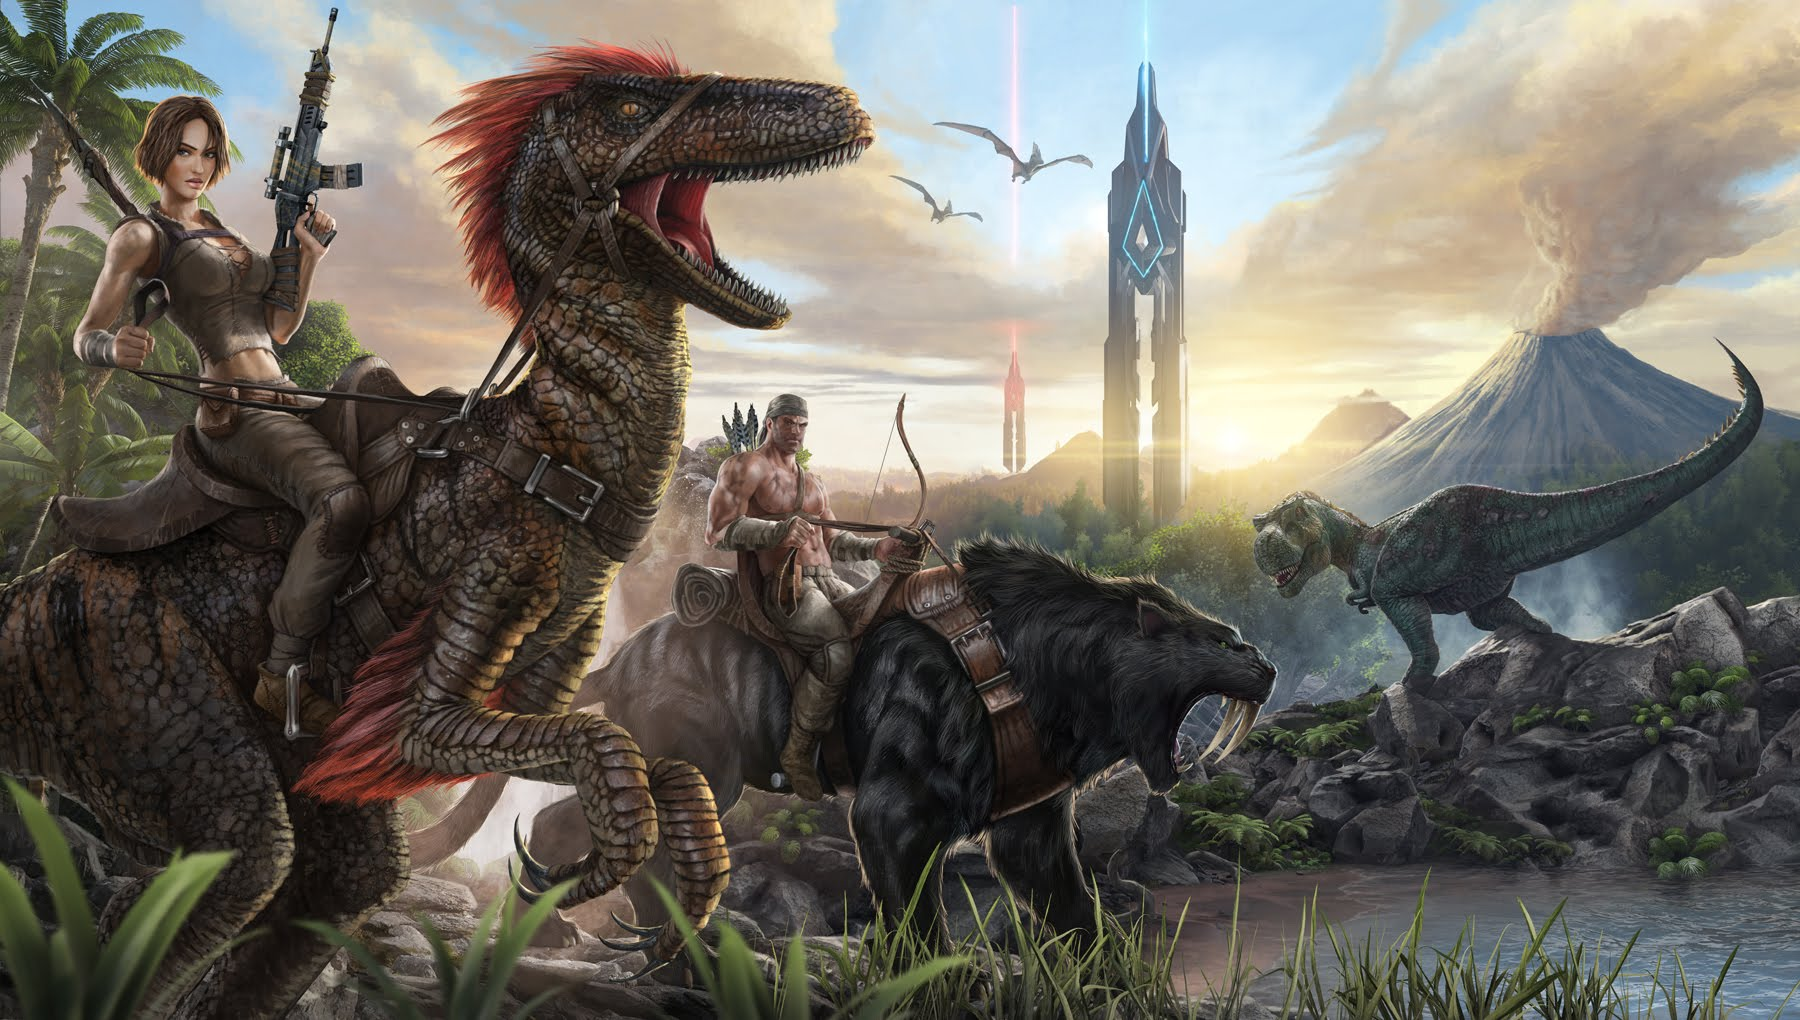 maxresdefault 11 Doubts Cast Over Ark: Survival Evolved PS4 Release